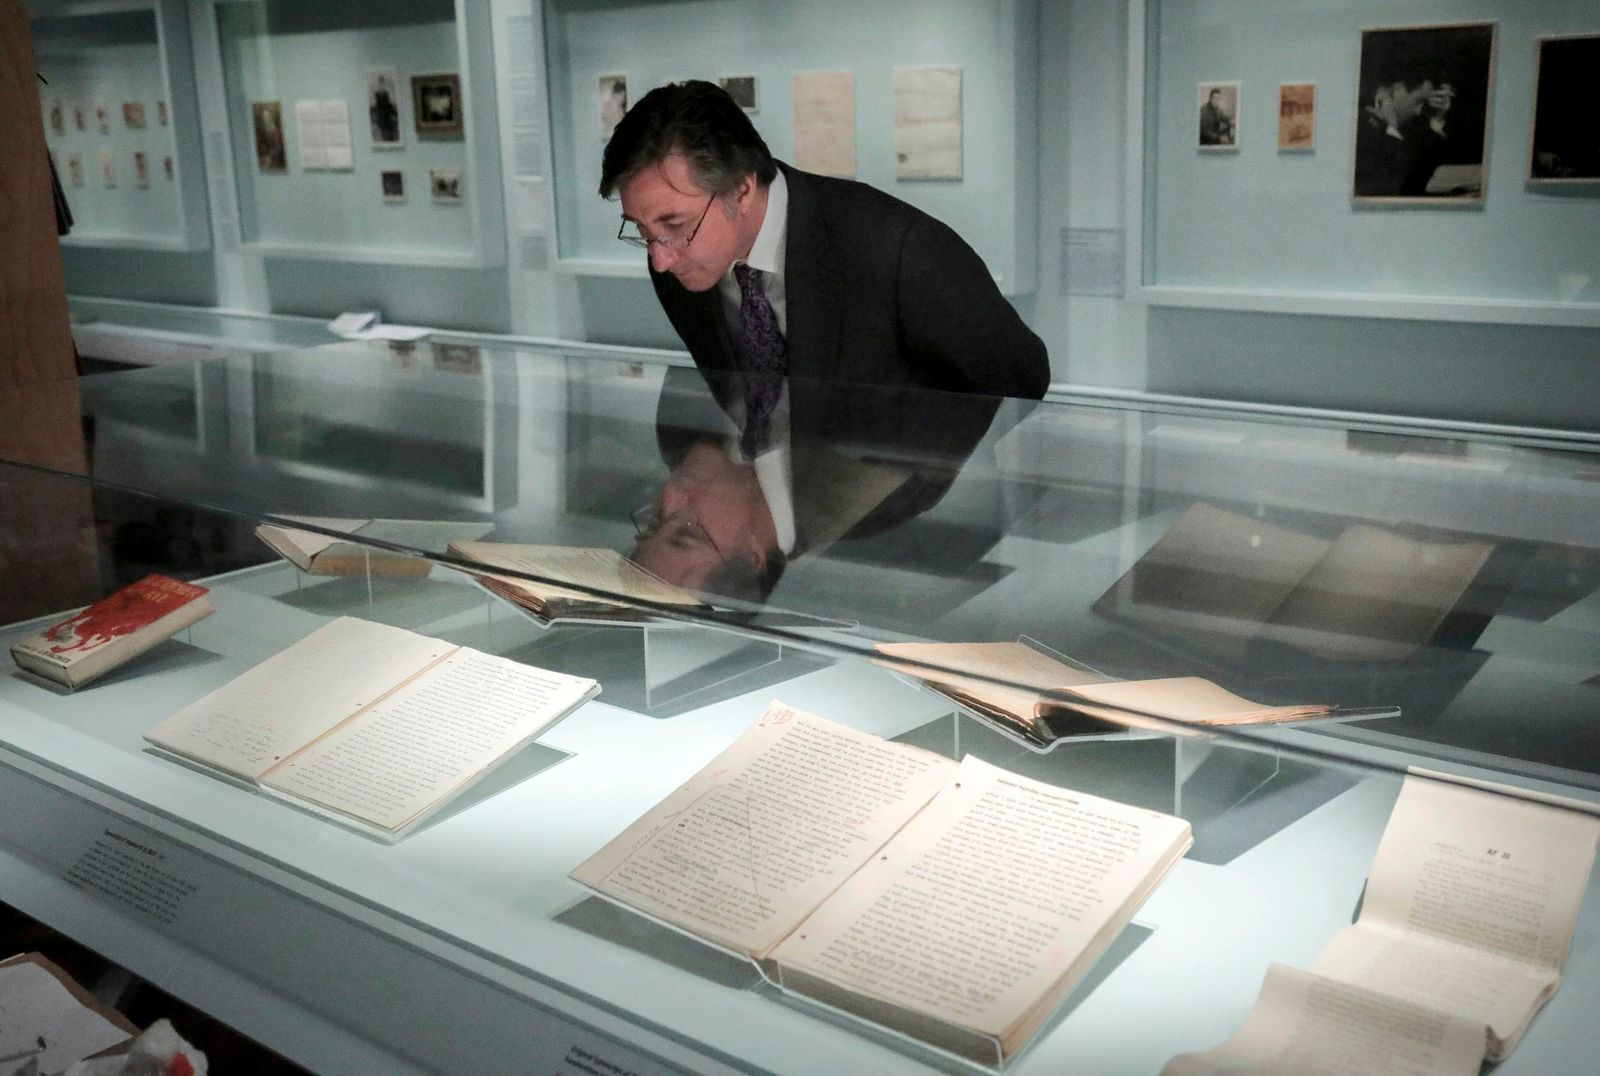 "Declan Kiely, director of special collections and exhibitions at the New York Public Library, review manuscripts during the installation of the library's J.D. Salinger exhibit, Wednesday, Oct. 16, 2019, in New York. The exhibit, titled ""JD Salinger,"" opens Friday and draws from archives made available by the author's family and helps mark the centennial of his birth. (AP Photo/Bebeto Matthews)"